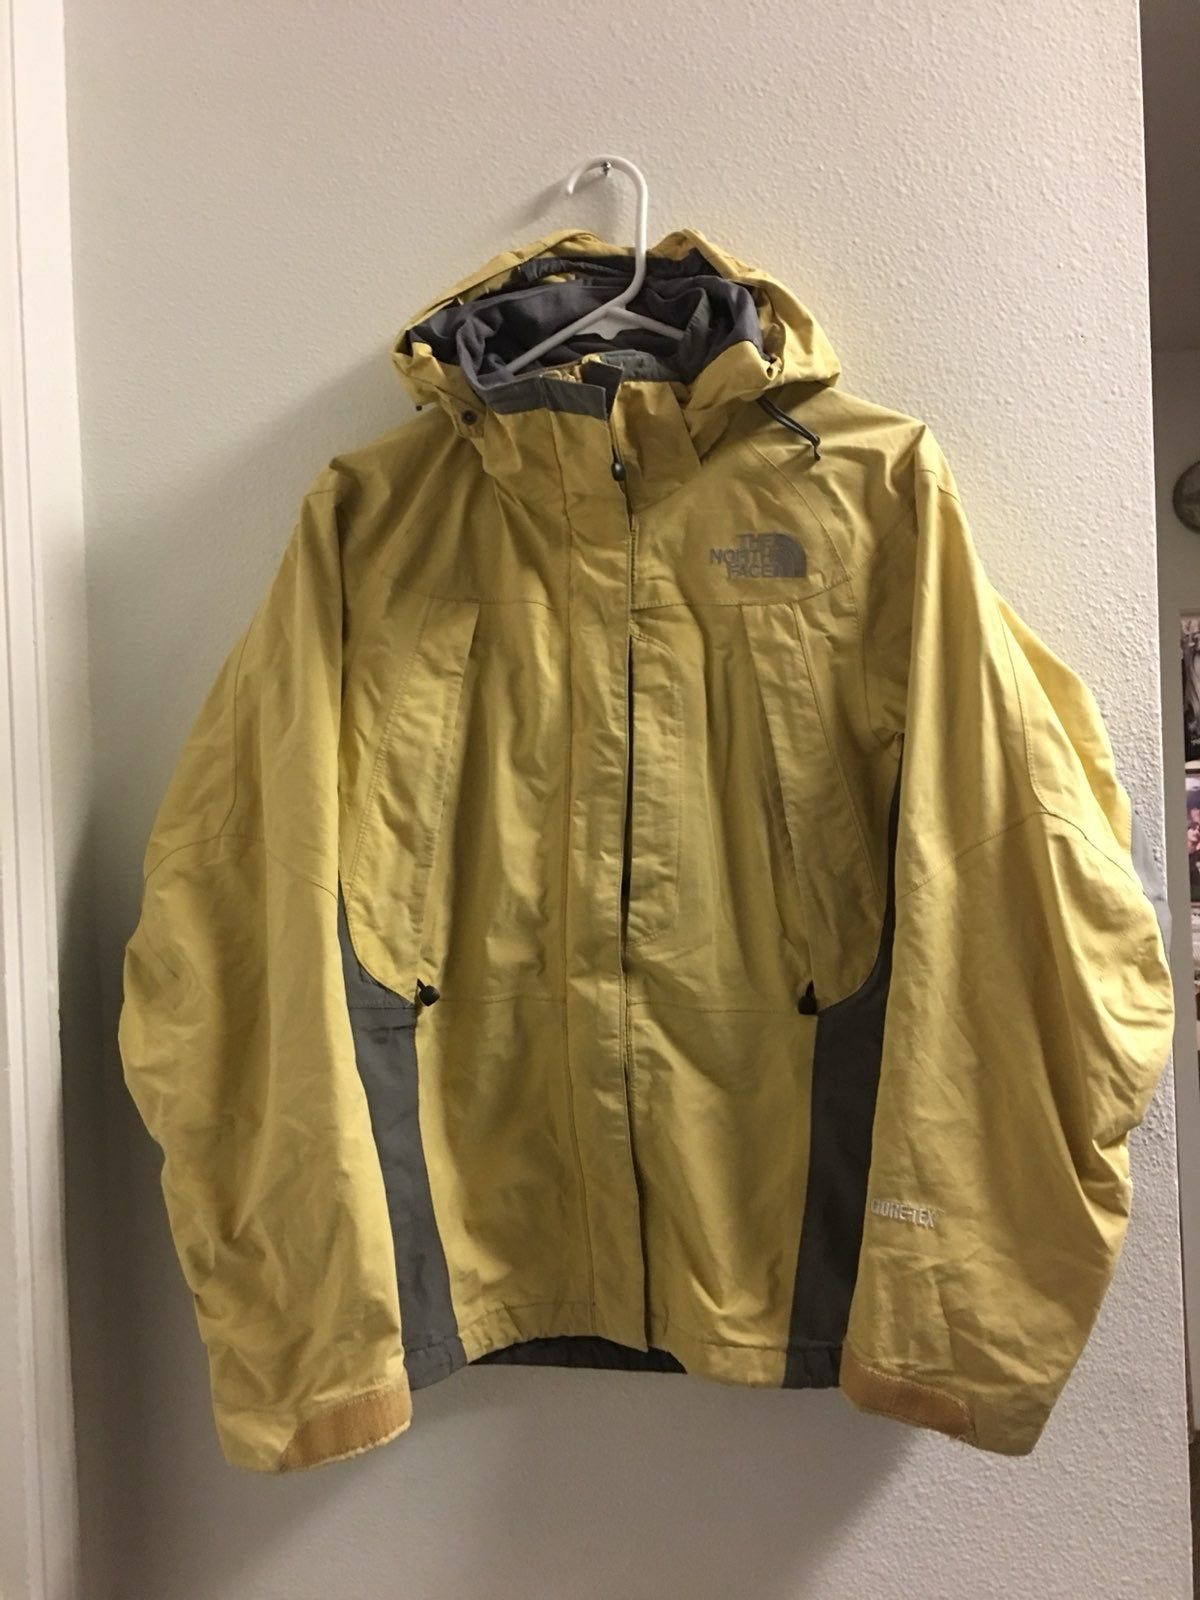 Yellow The North Face Gore Tex Jacket Women S North Face Jacket Gore Tex Jacket Jackets [ 1600 x 1200 Pixel ]